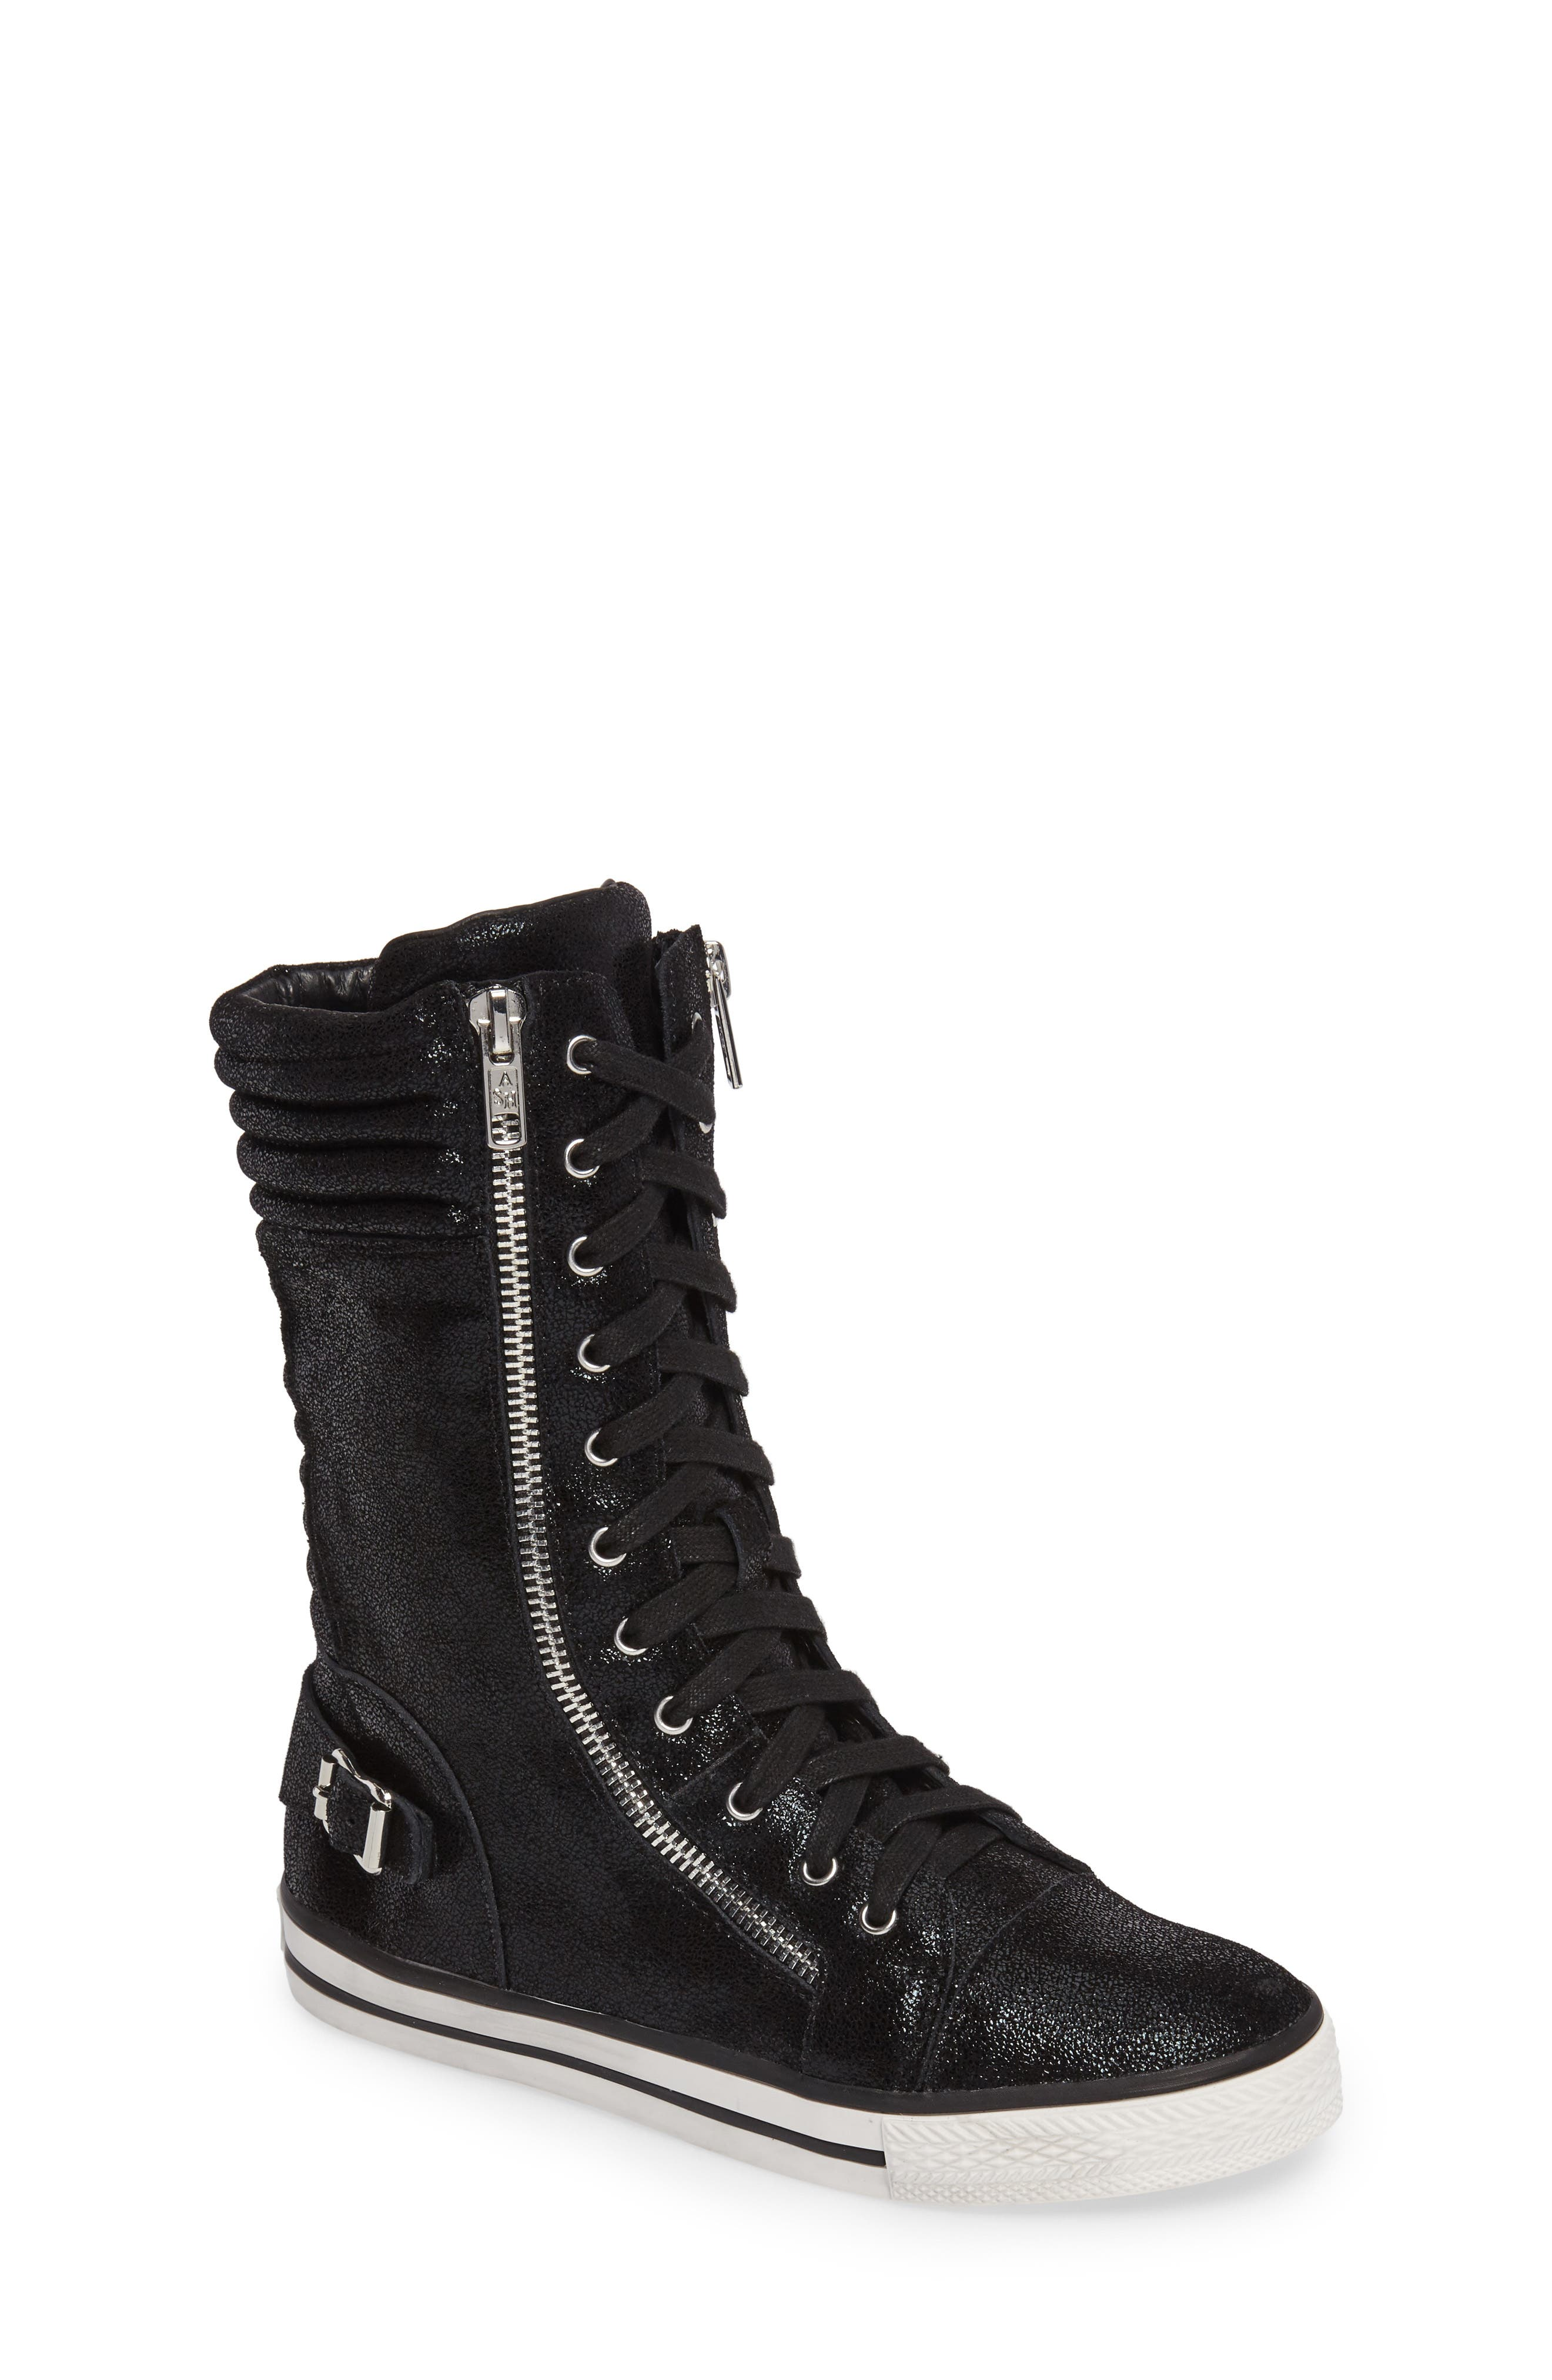 Vava Cate Ultra High Top Sneaker,                             Main thumbnail 1, color,                             001